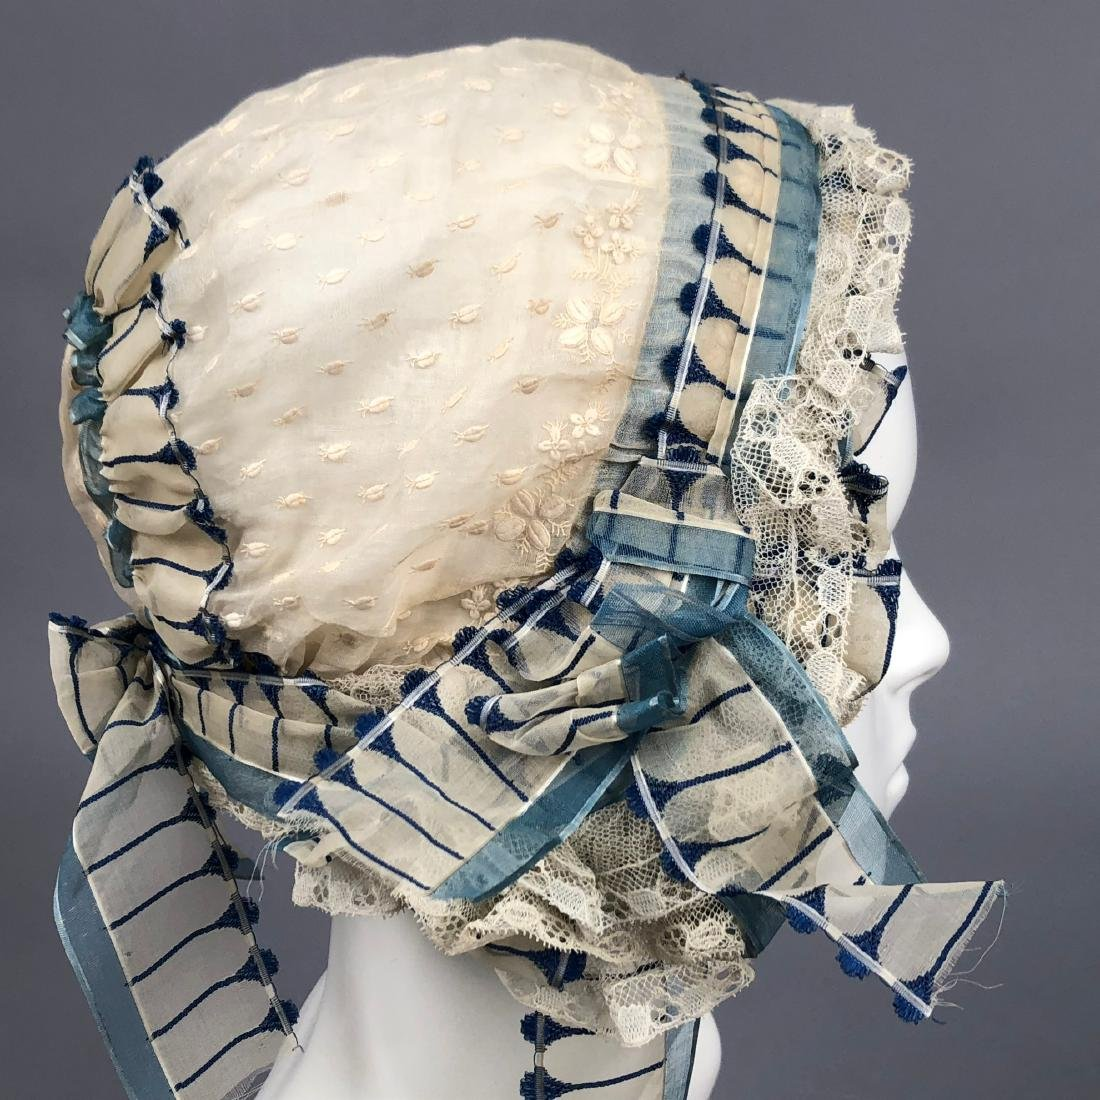 THREE FANCY WHITE INDOOR BONNETS, 1830s - 1840s - 4